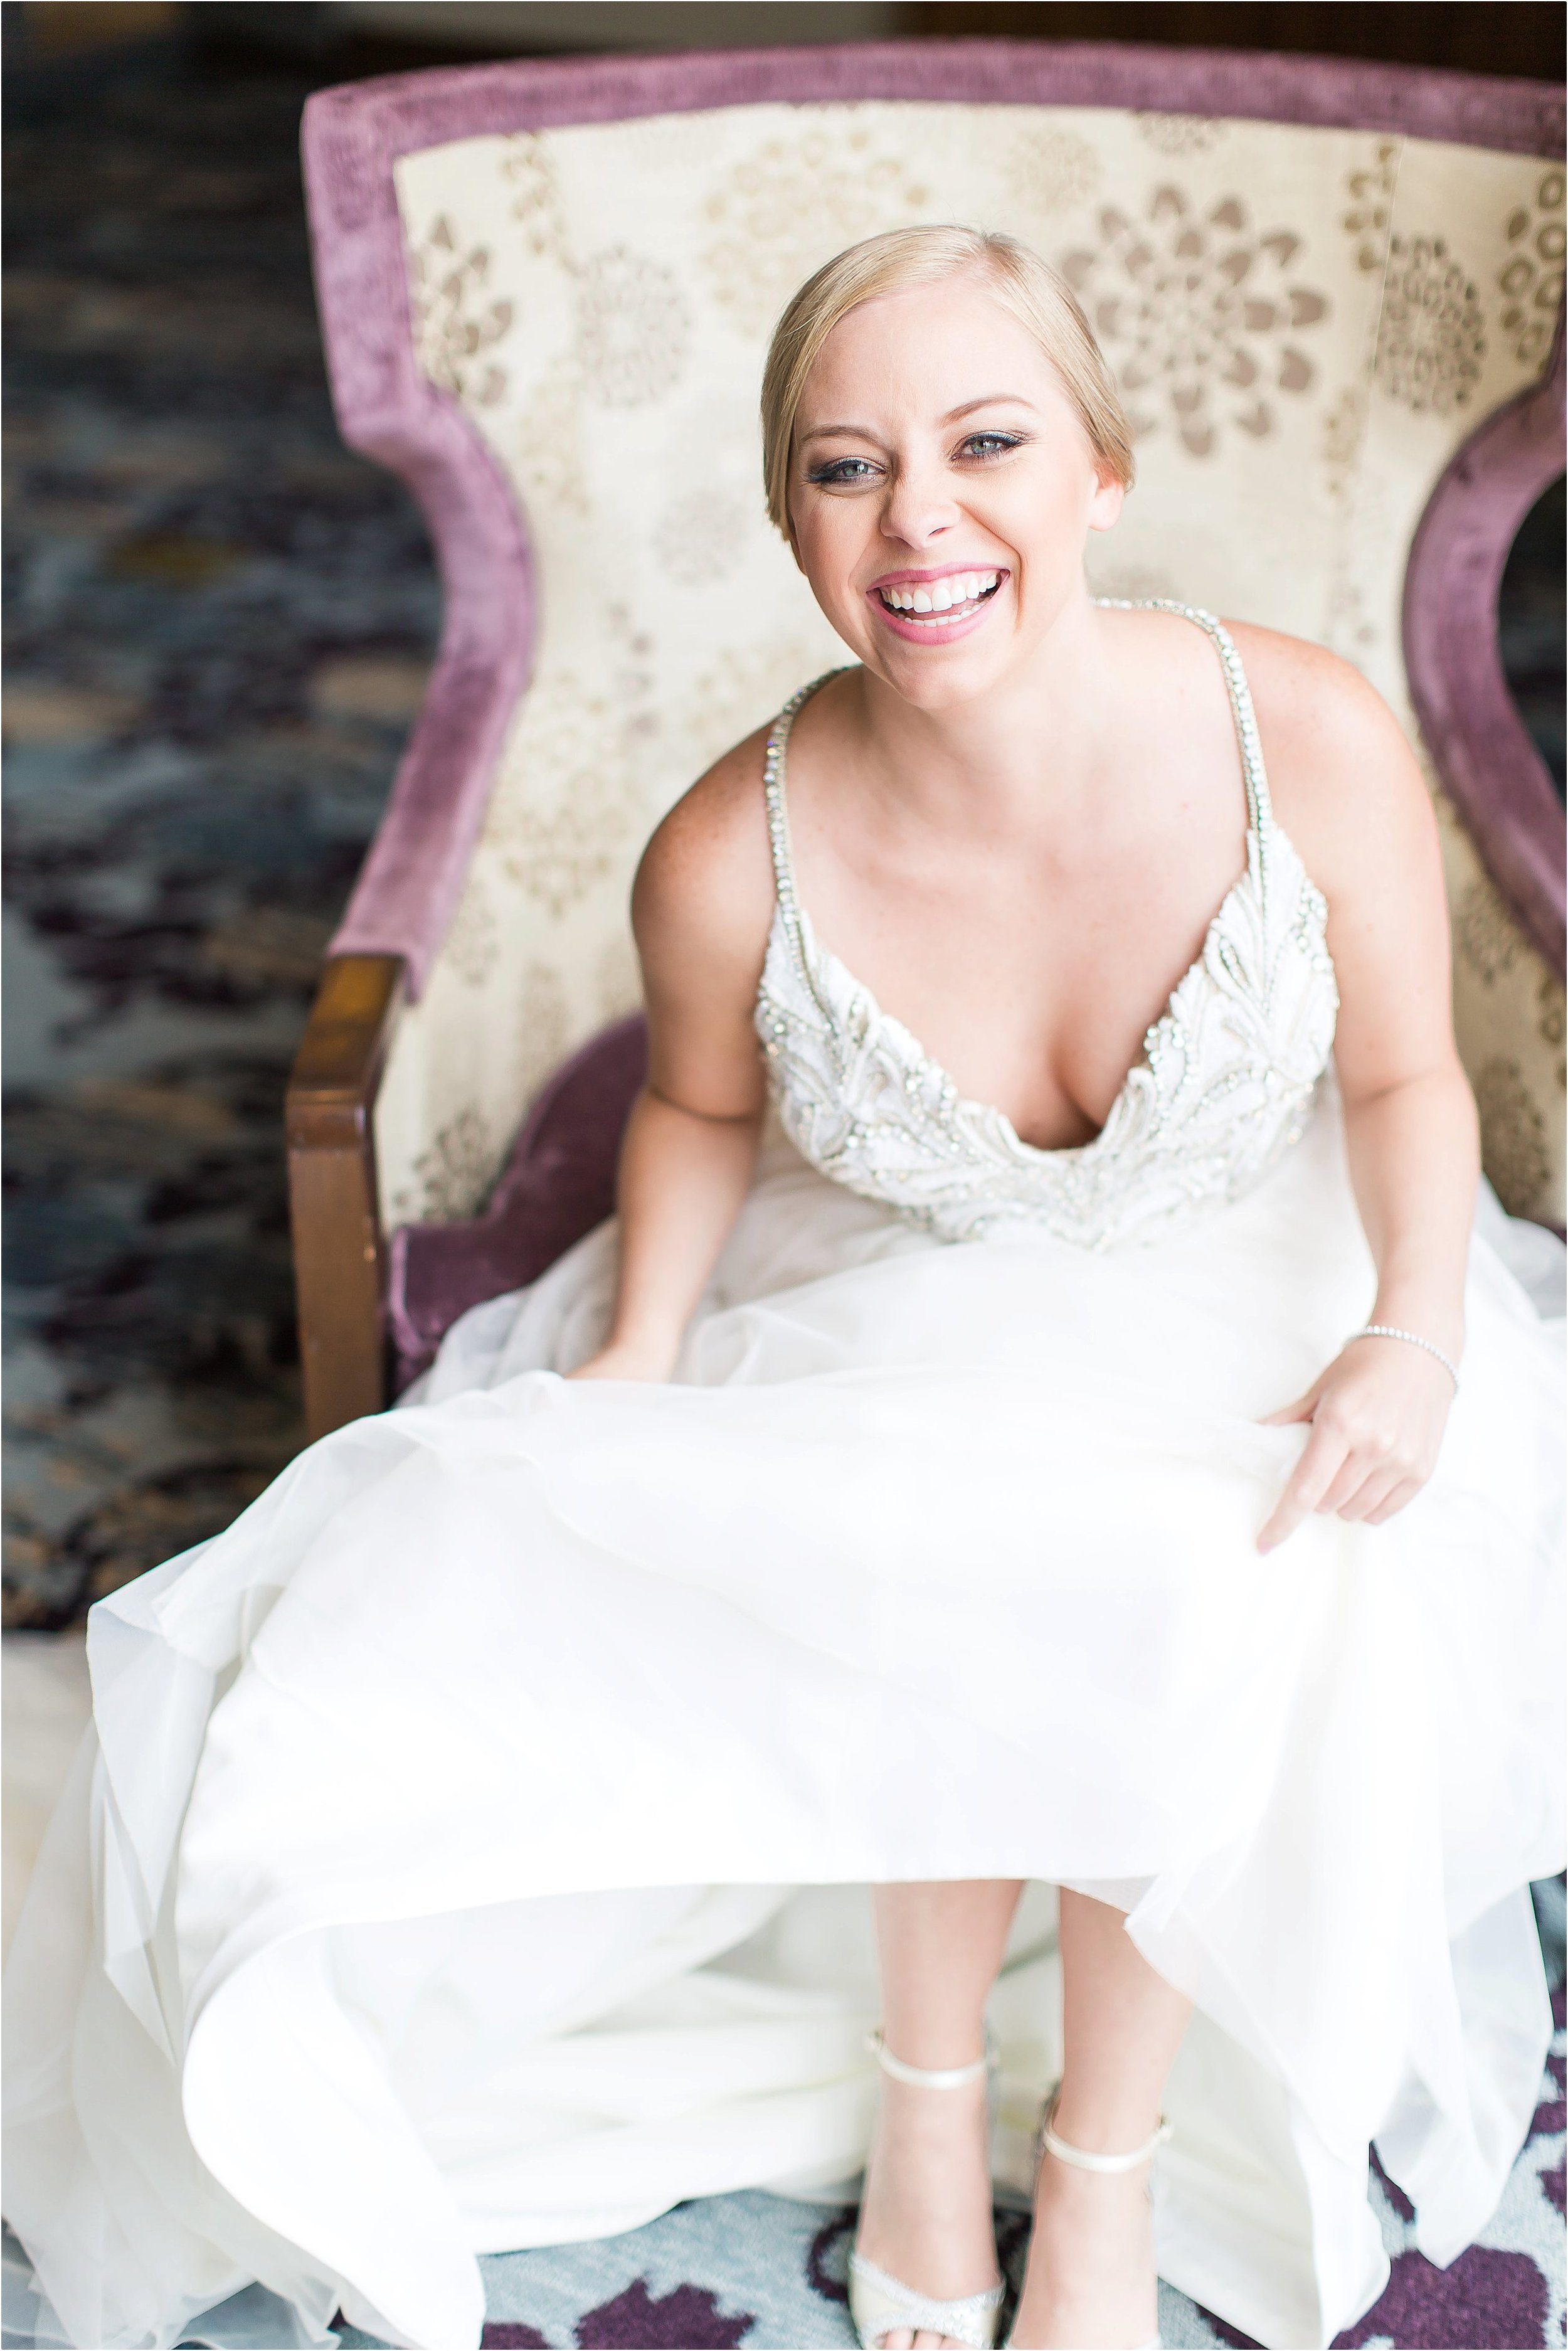 Timeless bridal portrait in Hayley Paige wedding gown Hayley Paige wedding gown getting ready moments at Bonnet Creek Wedding by PSJ Photography